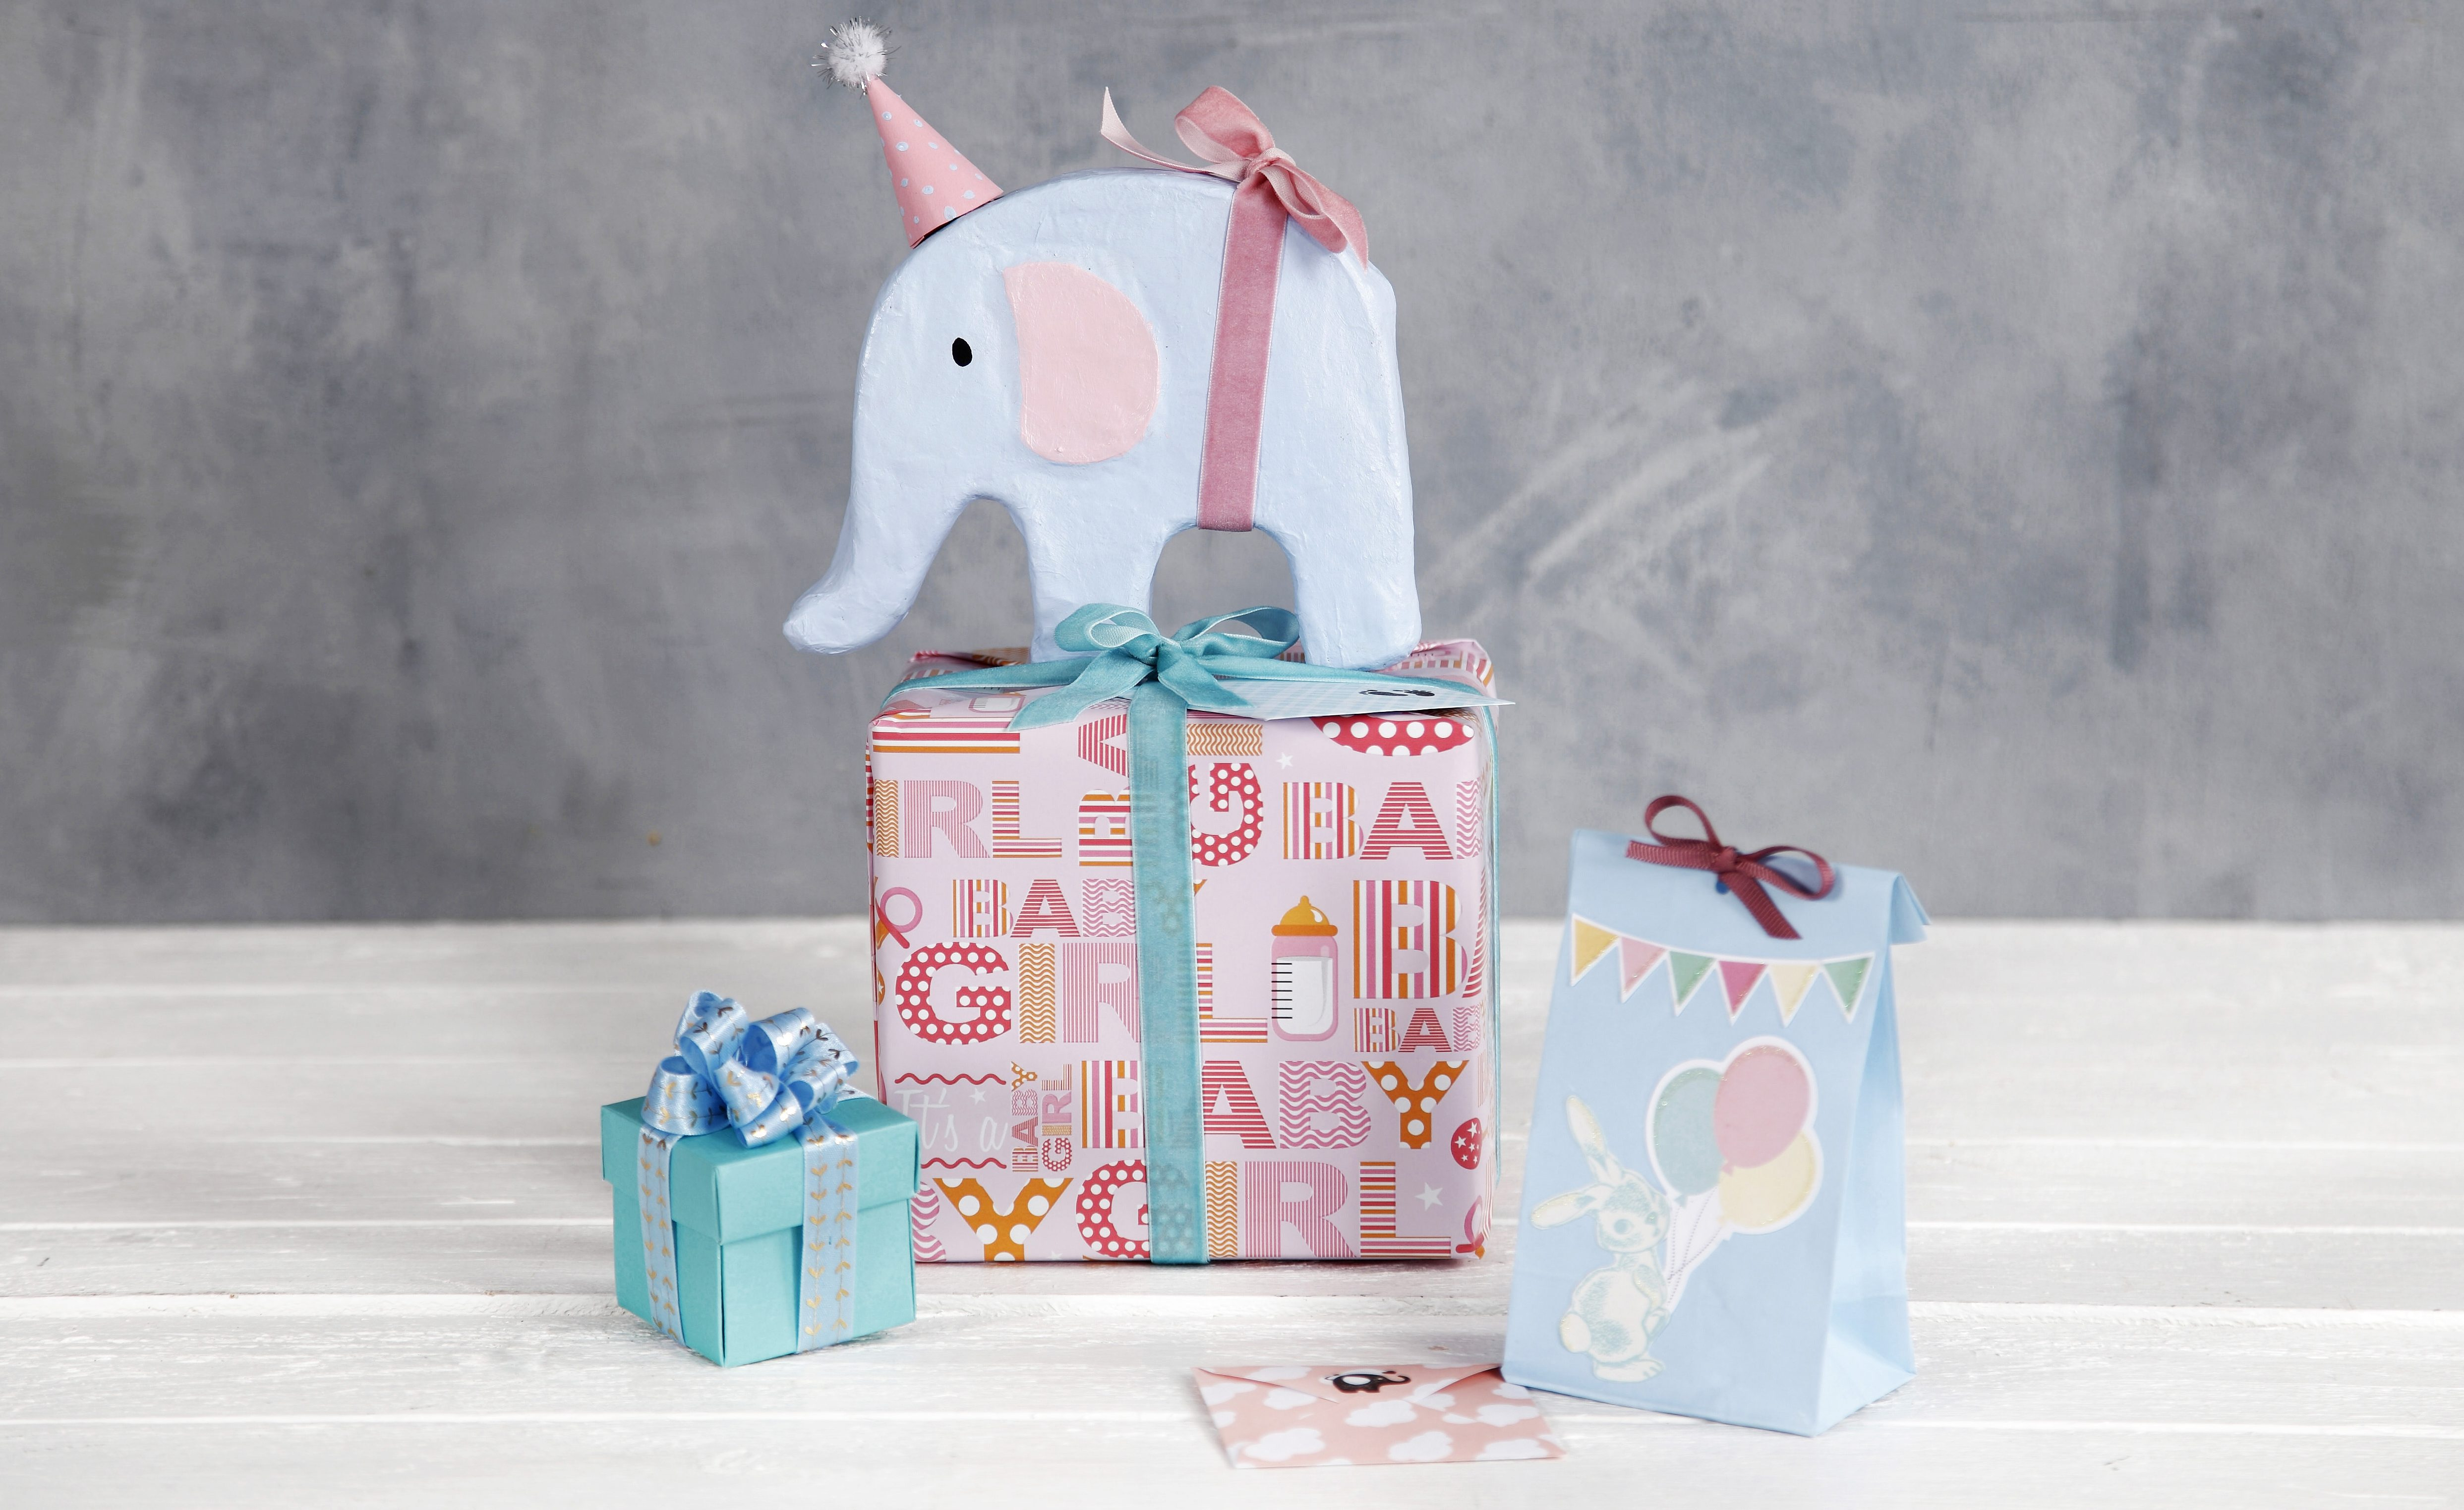 Babyshower presentinslagning inspiration